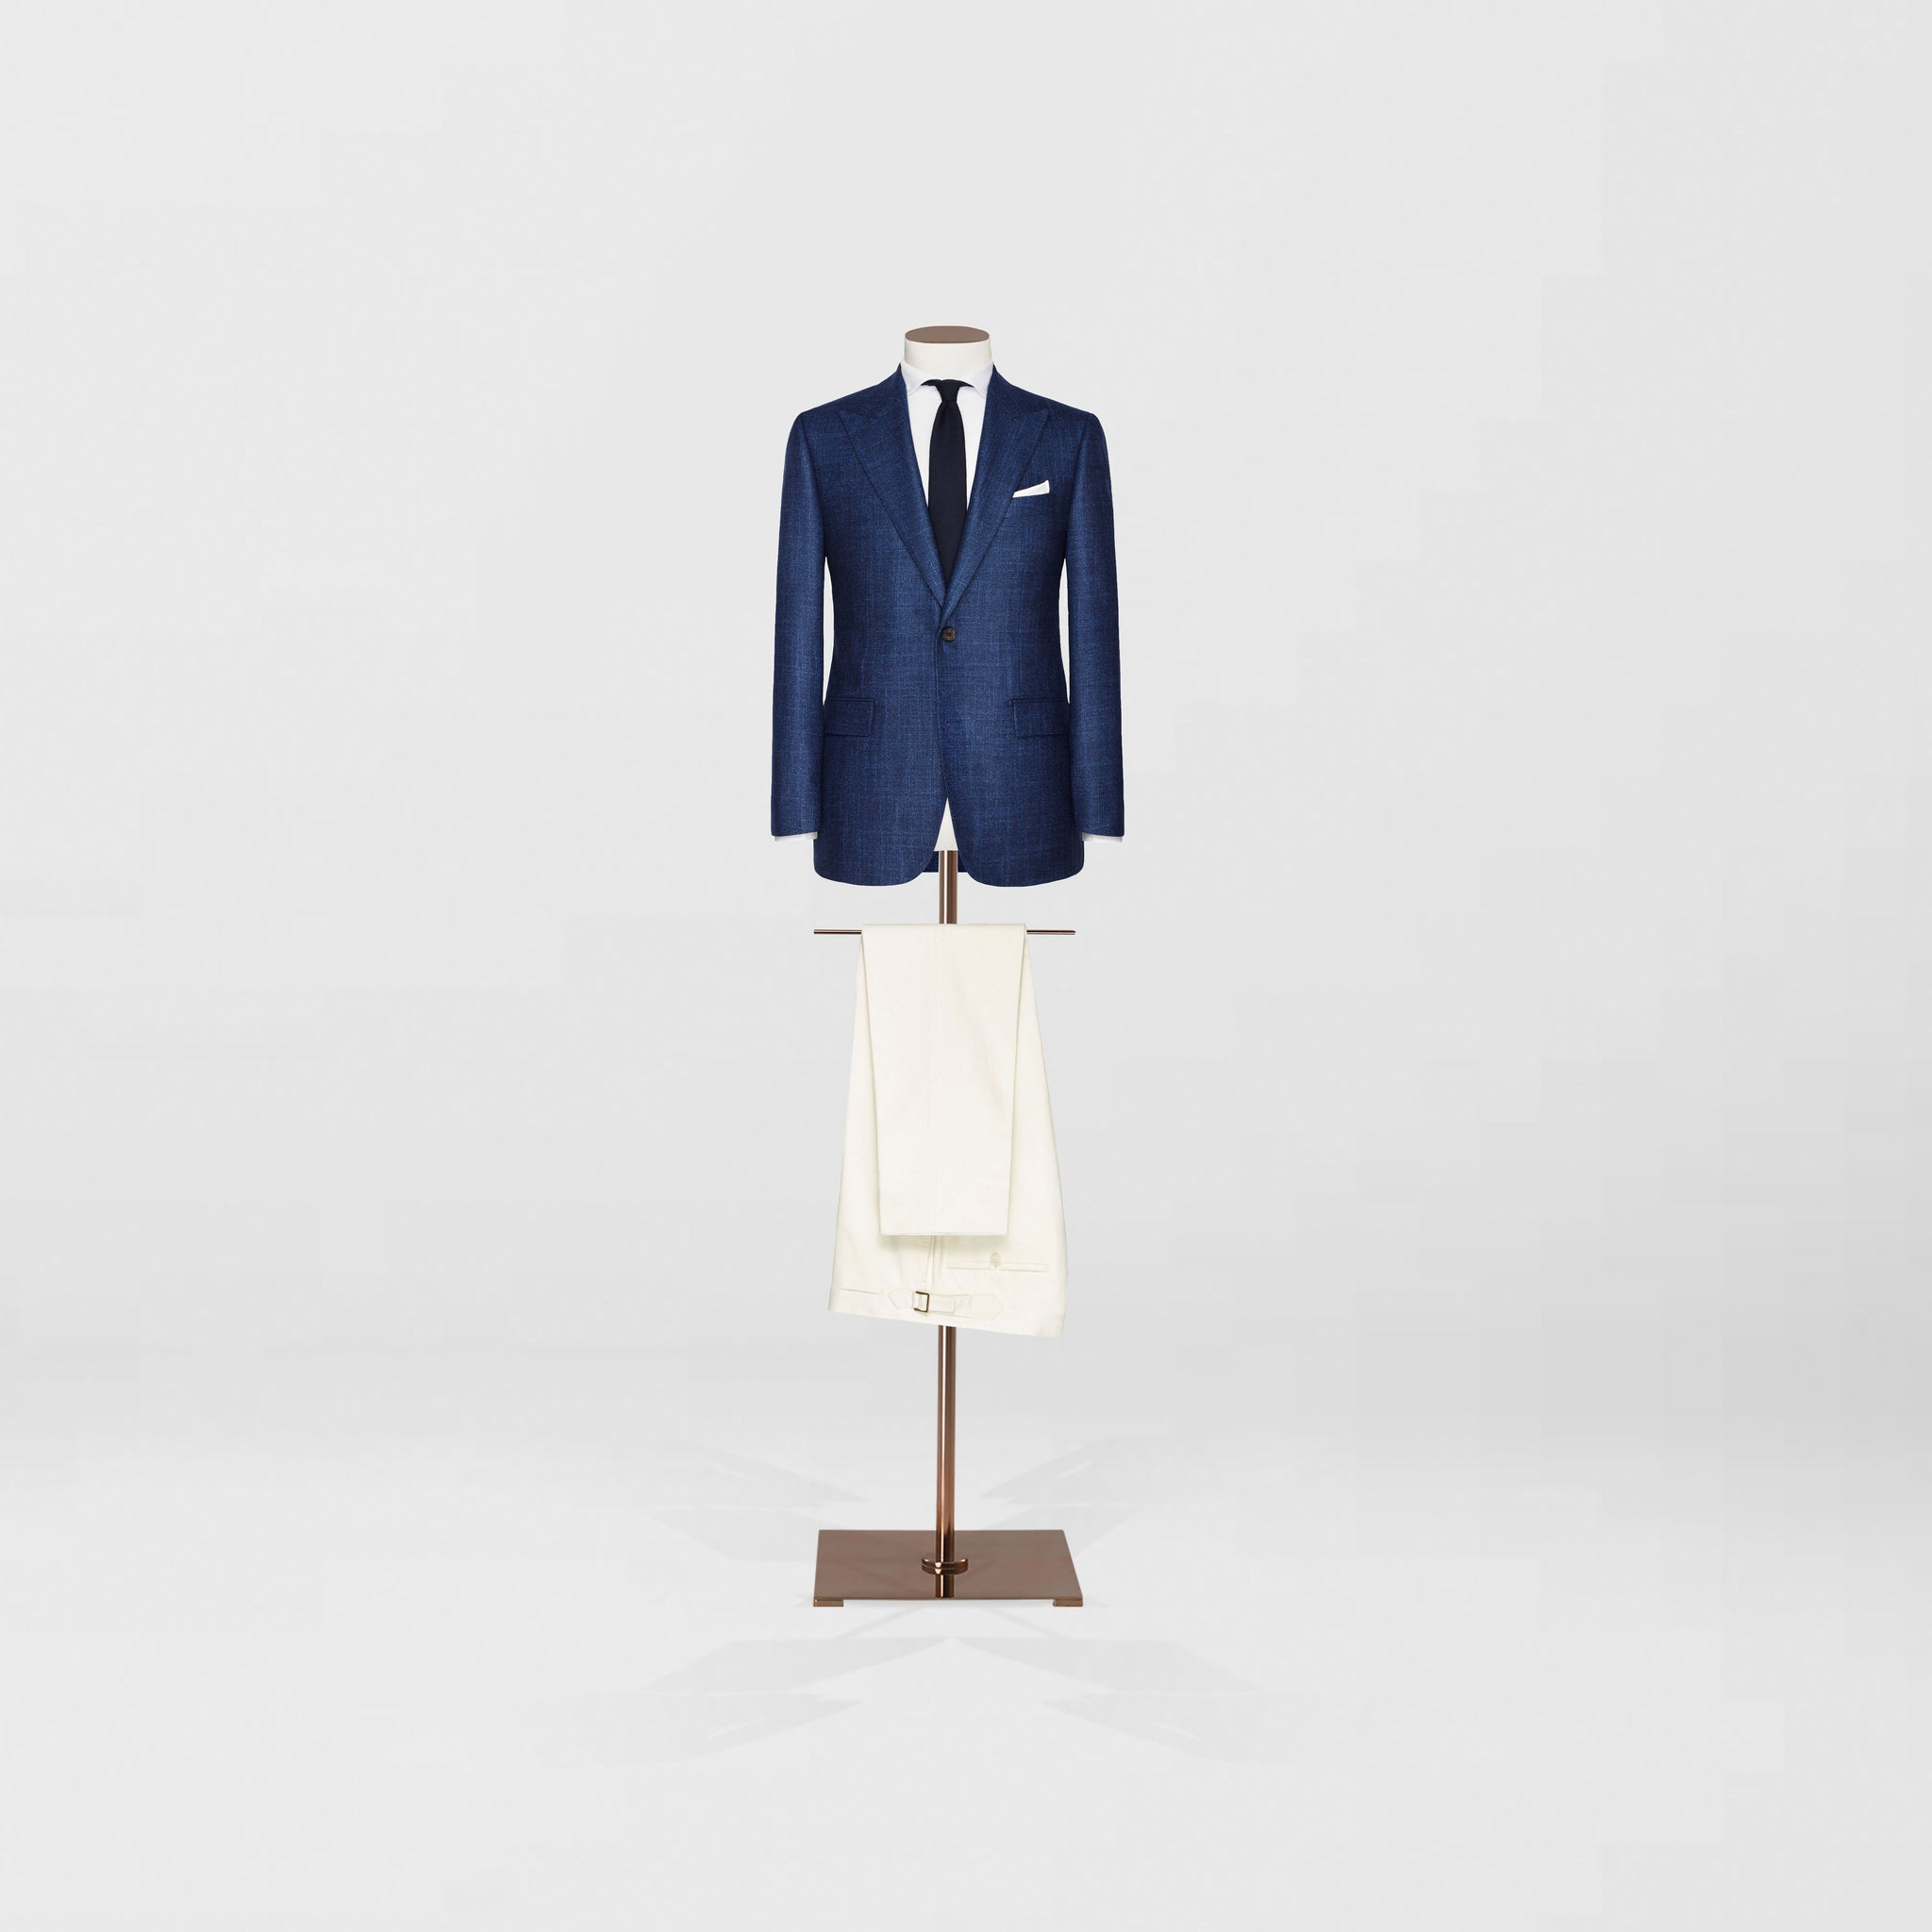 Single button peak lapel sports jacket & cotton trouser - Tailor & Co Sydney.